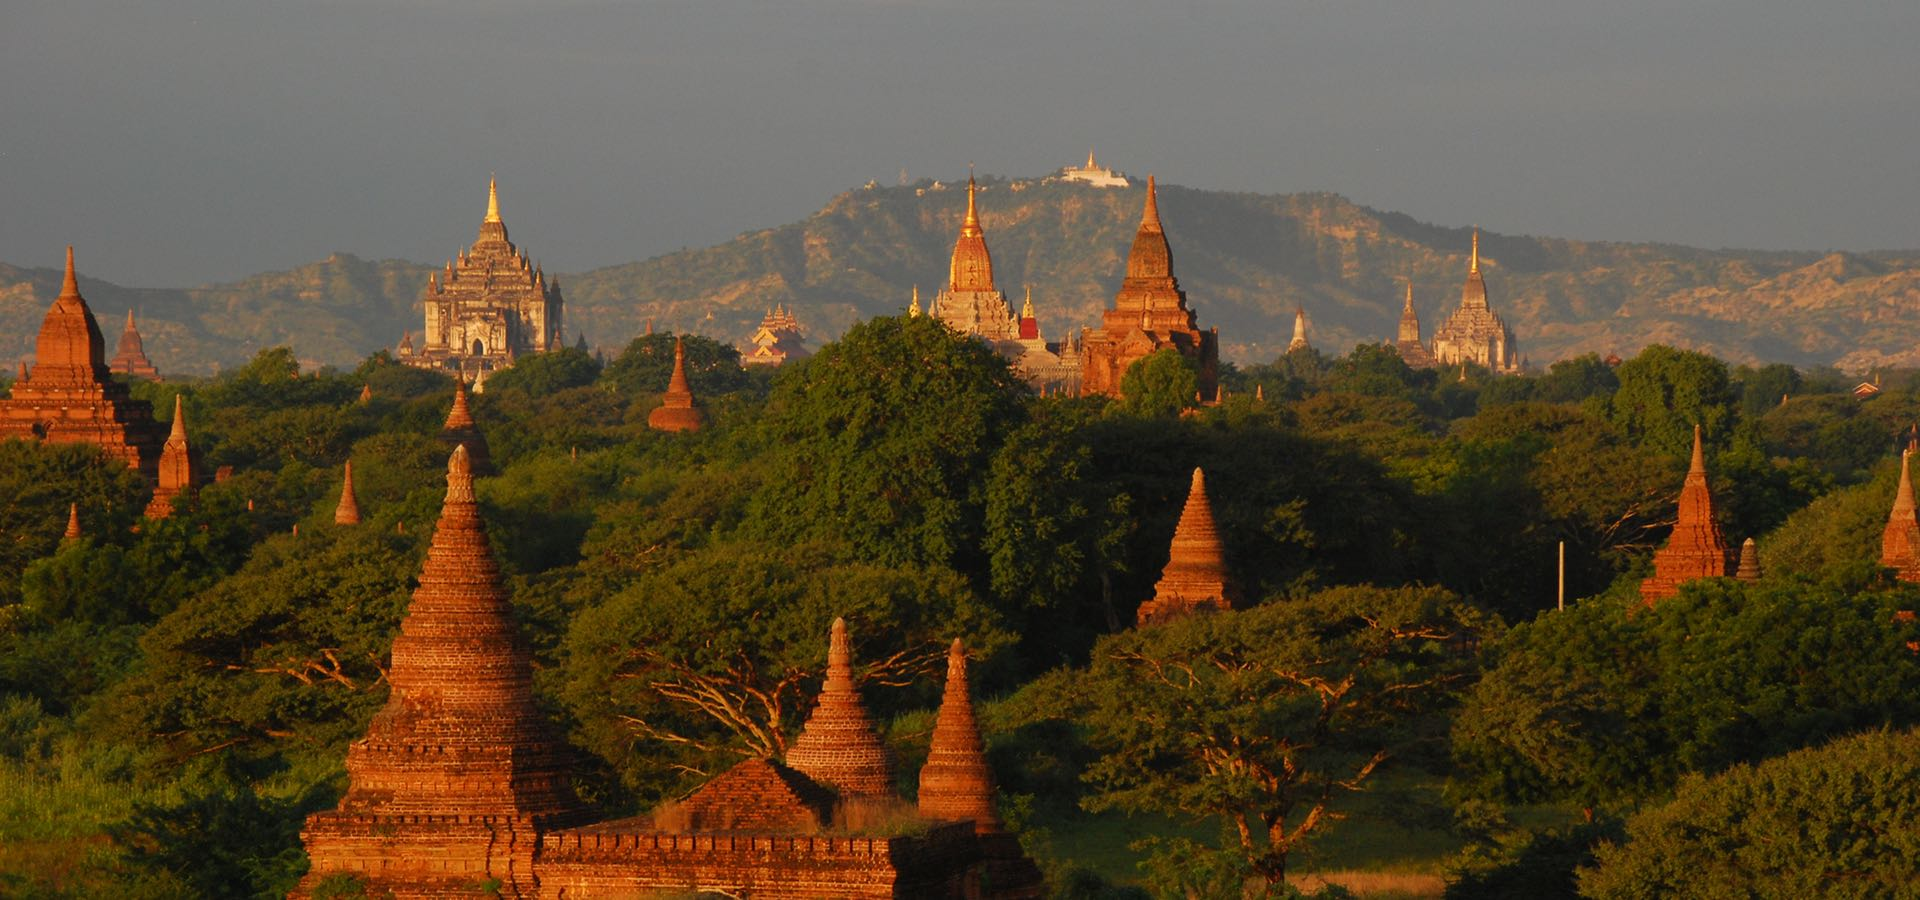 The Myanmar river cruise is where spirit, culture and nature come together and enrich